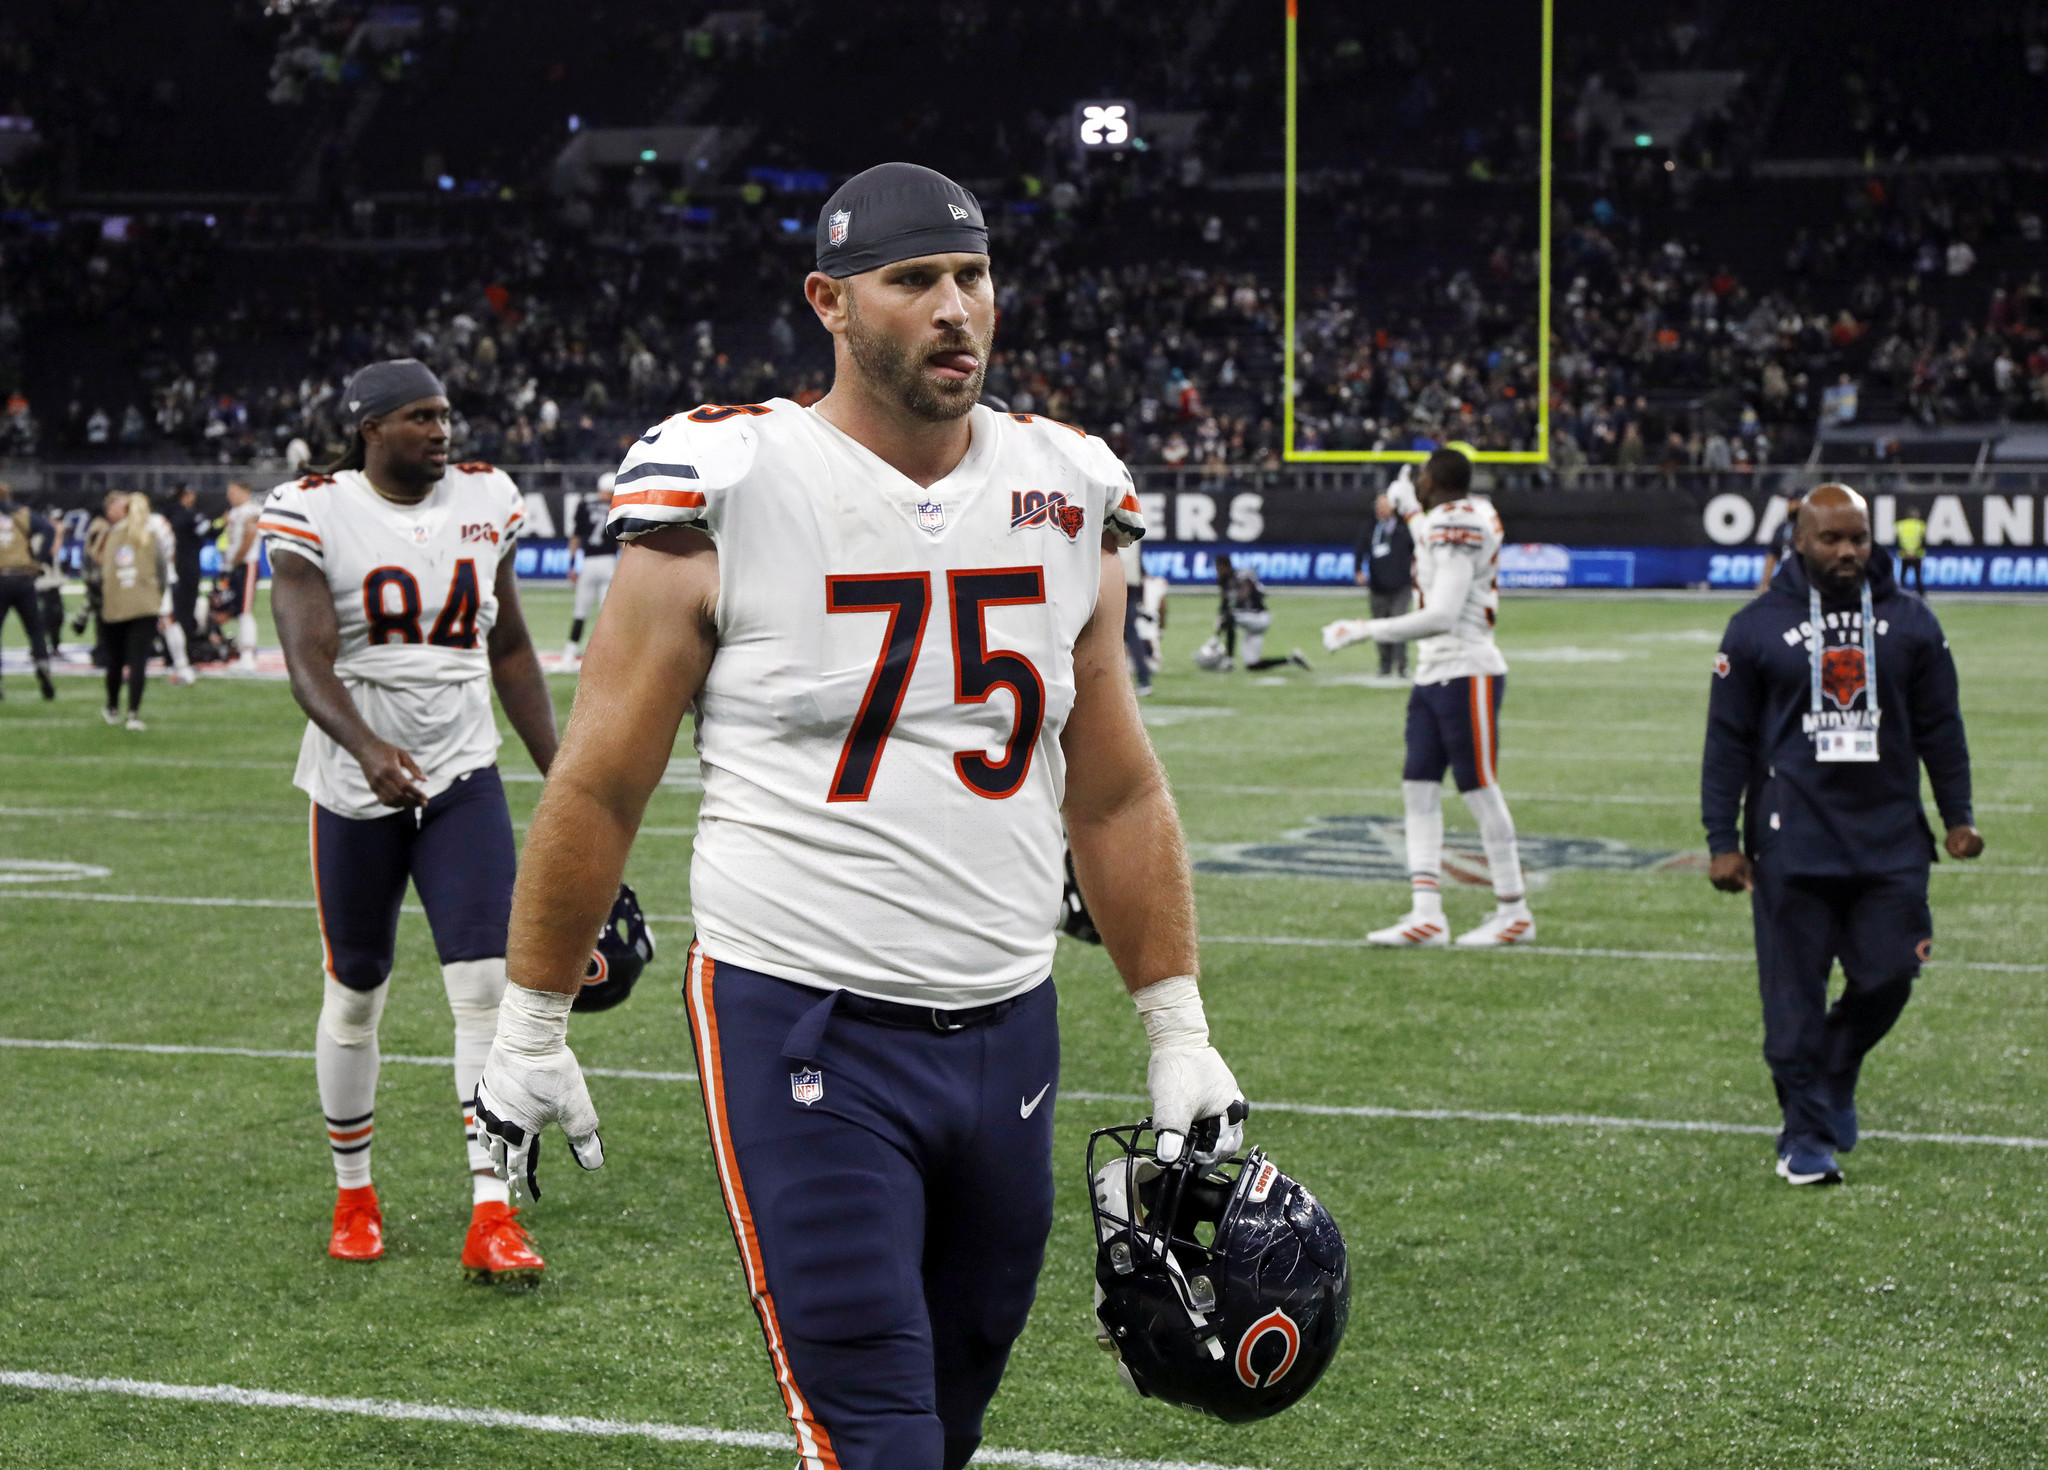 Chicago Bears' Kyle Long sees stellar run come to sudden end ...